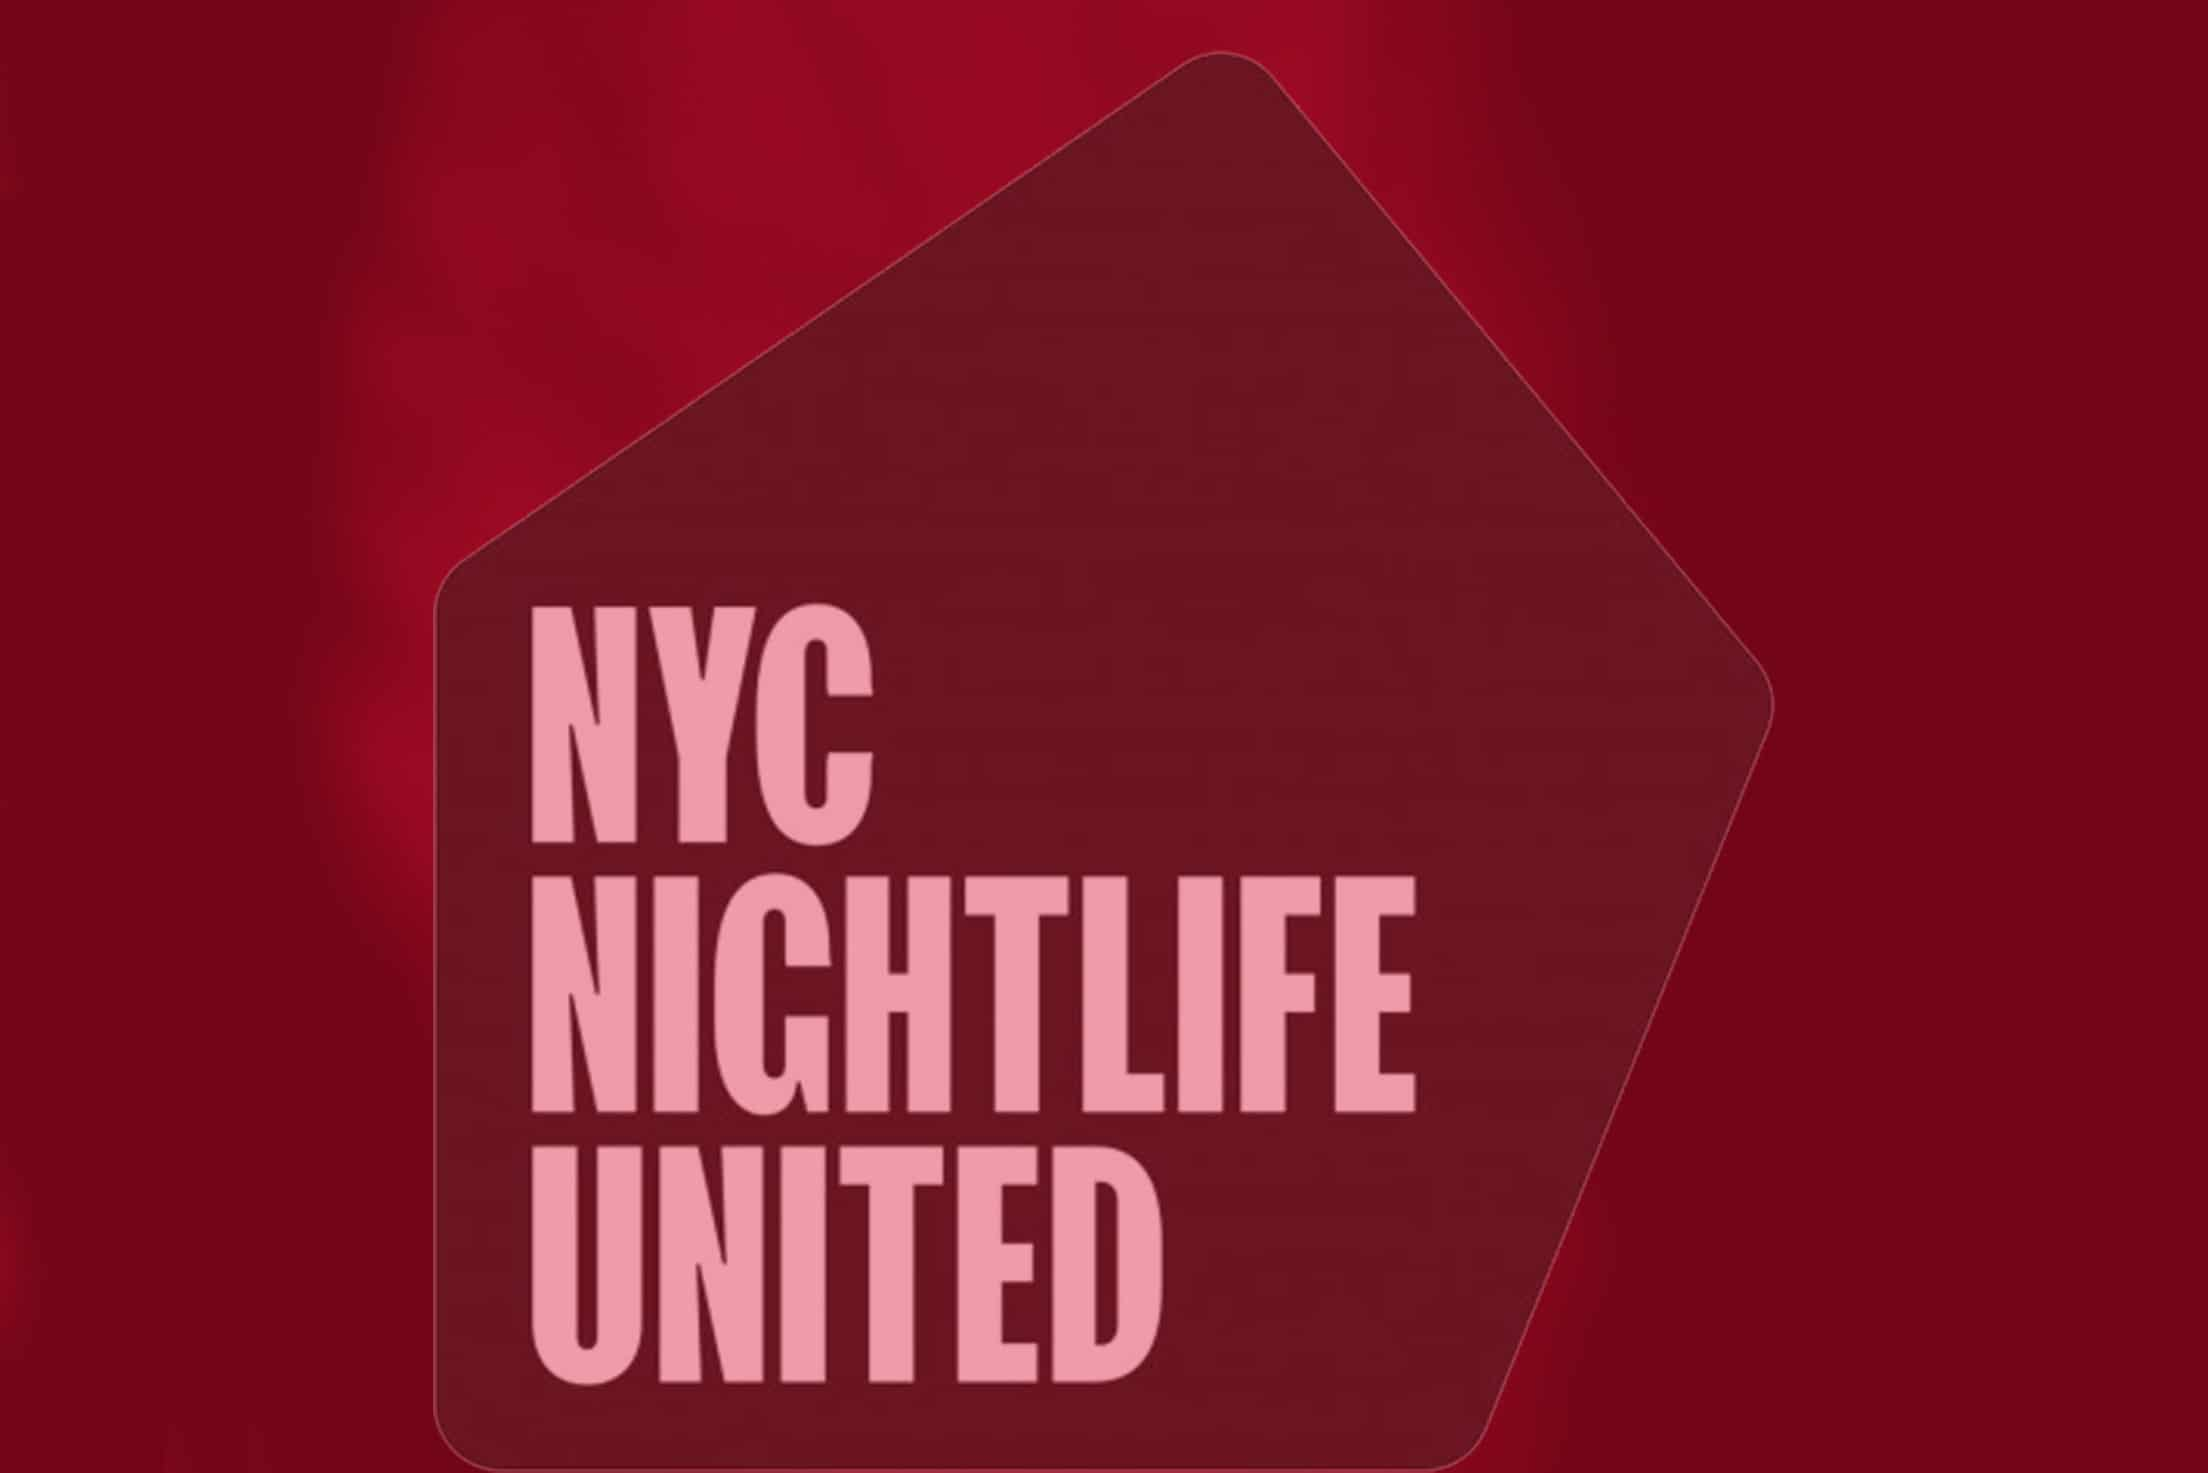 NYC NIGHTLIFE UNITED LAUNCHES INDUSTRY COVID-19 RELIEF FUND.